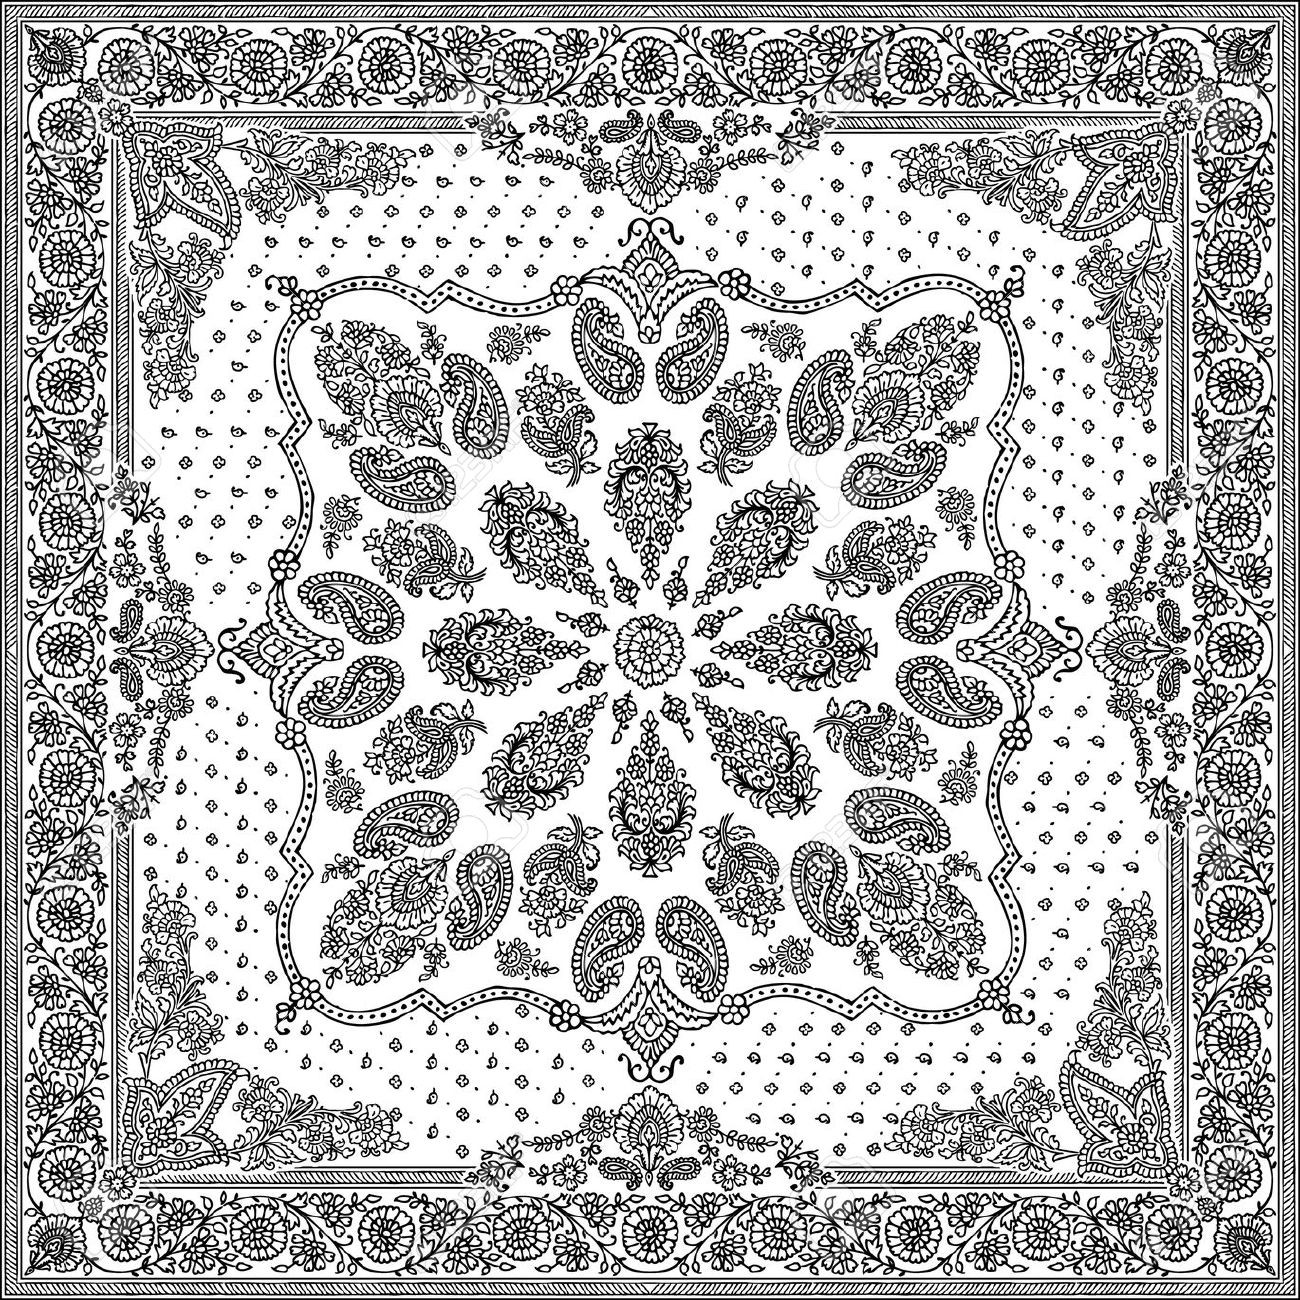 1300x1300 Bandana Pattern Clipart Black And White